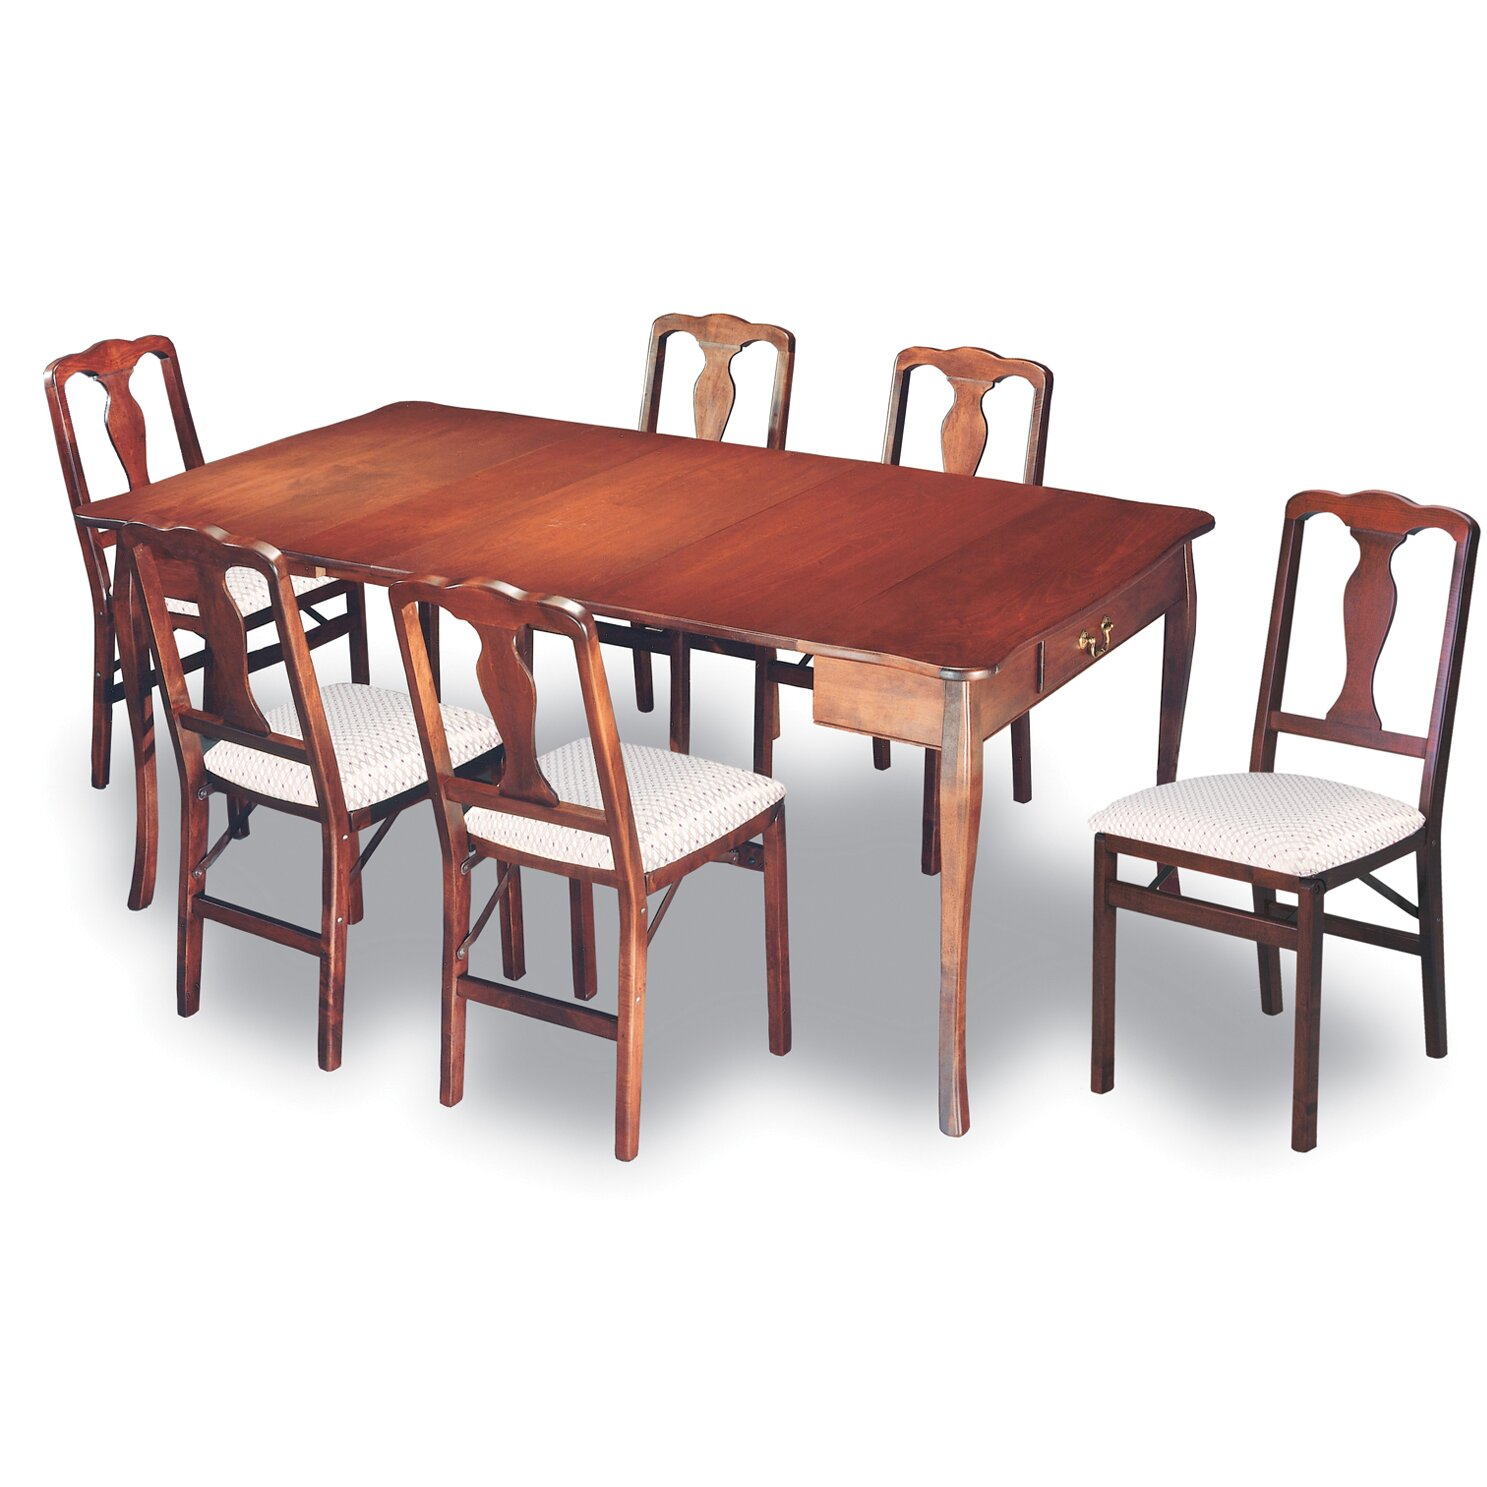 Stakmore traditional expanding dining table reviews for Expandable dining table